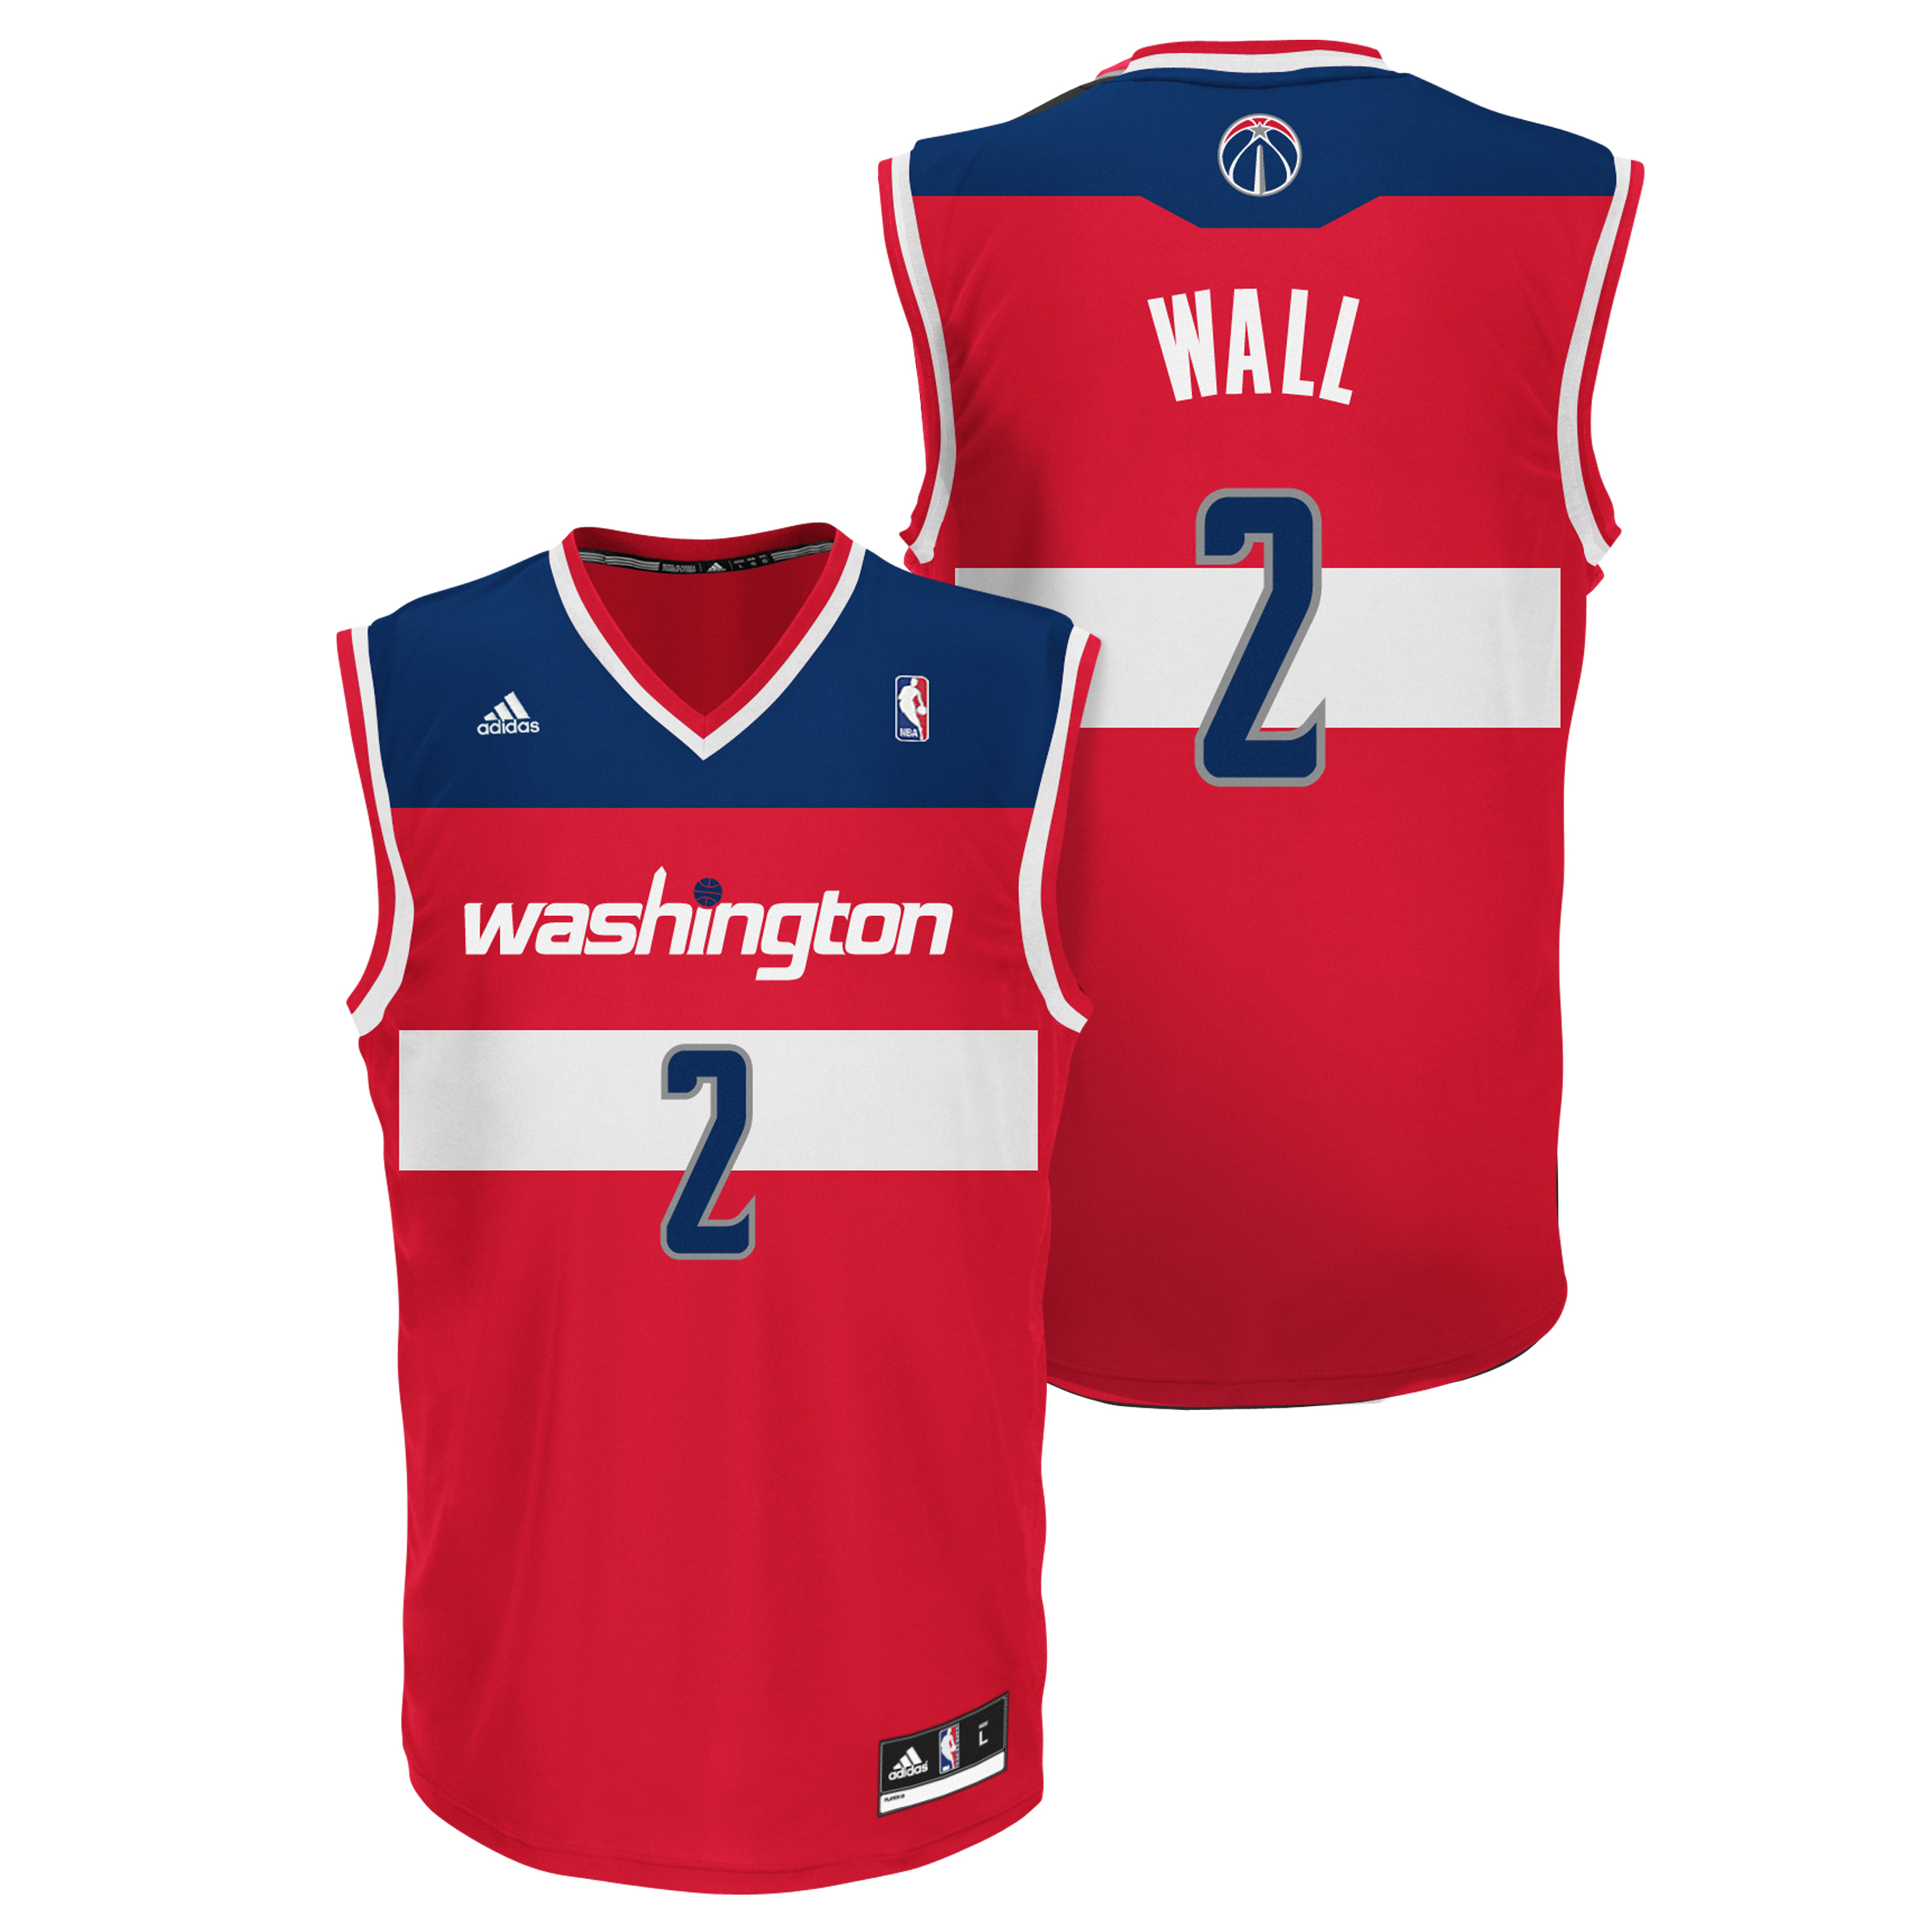 Washington Wizards Road Replica Jersey - John Wall - Mens